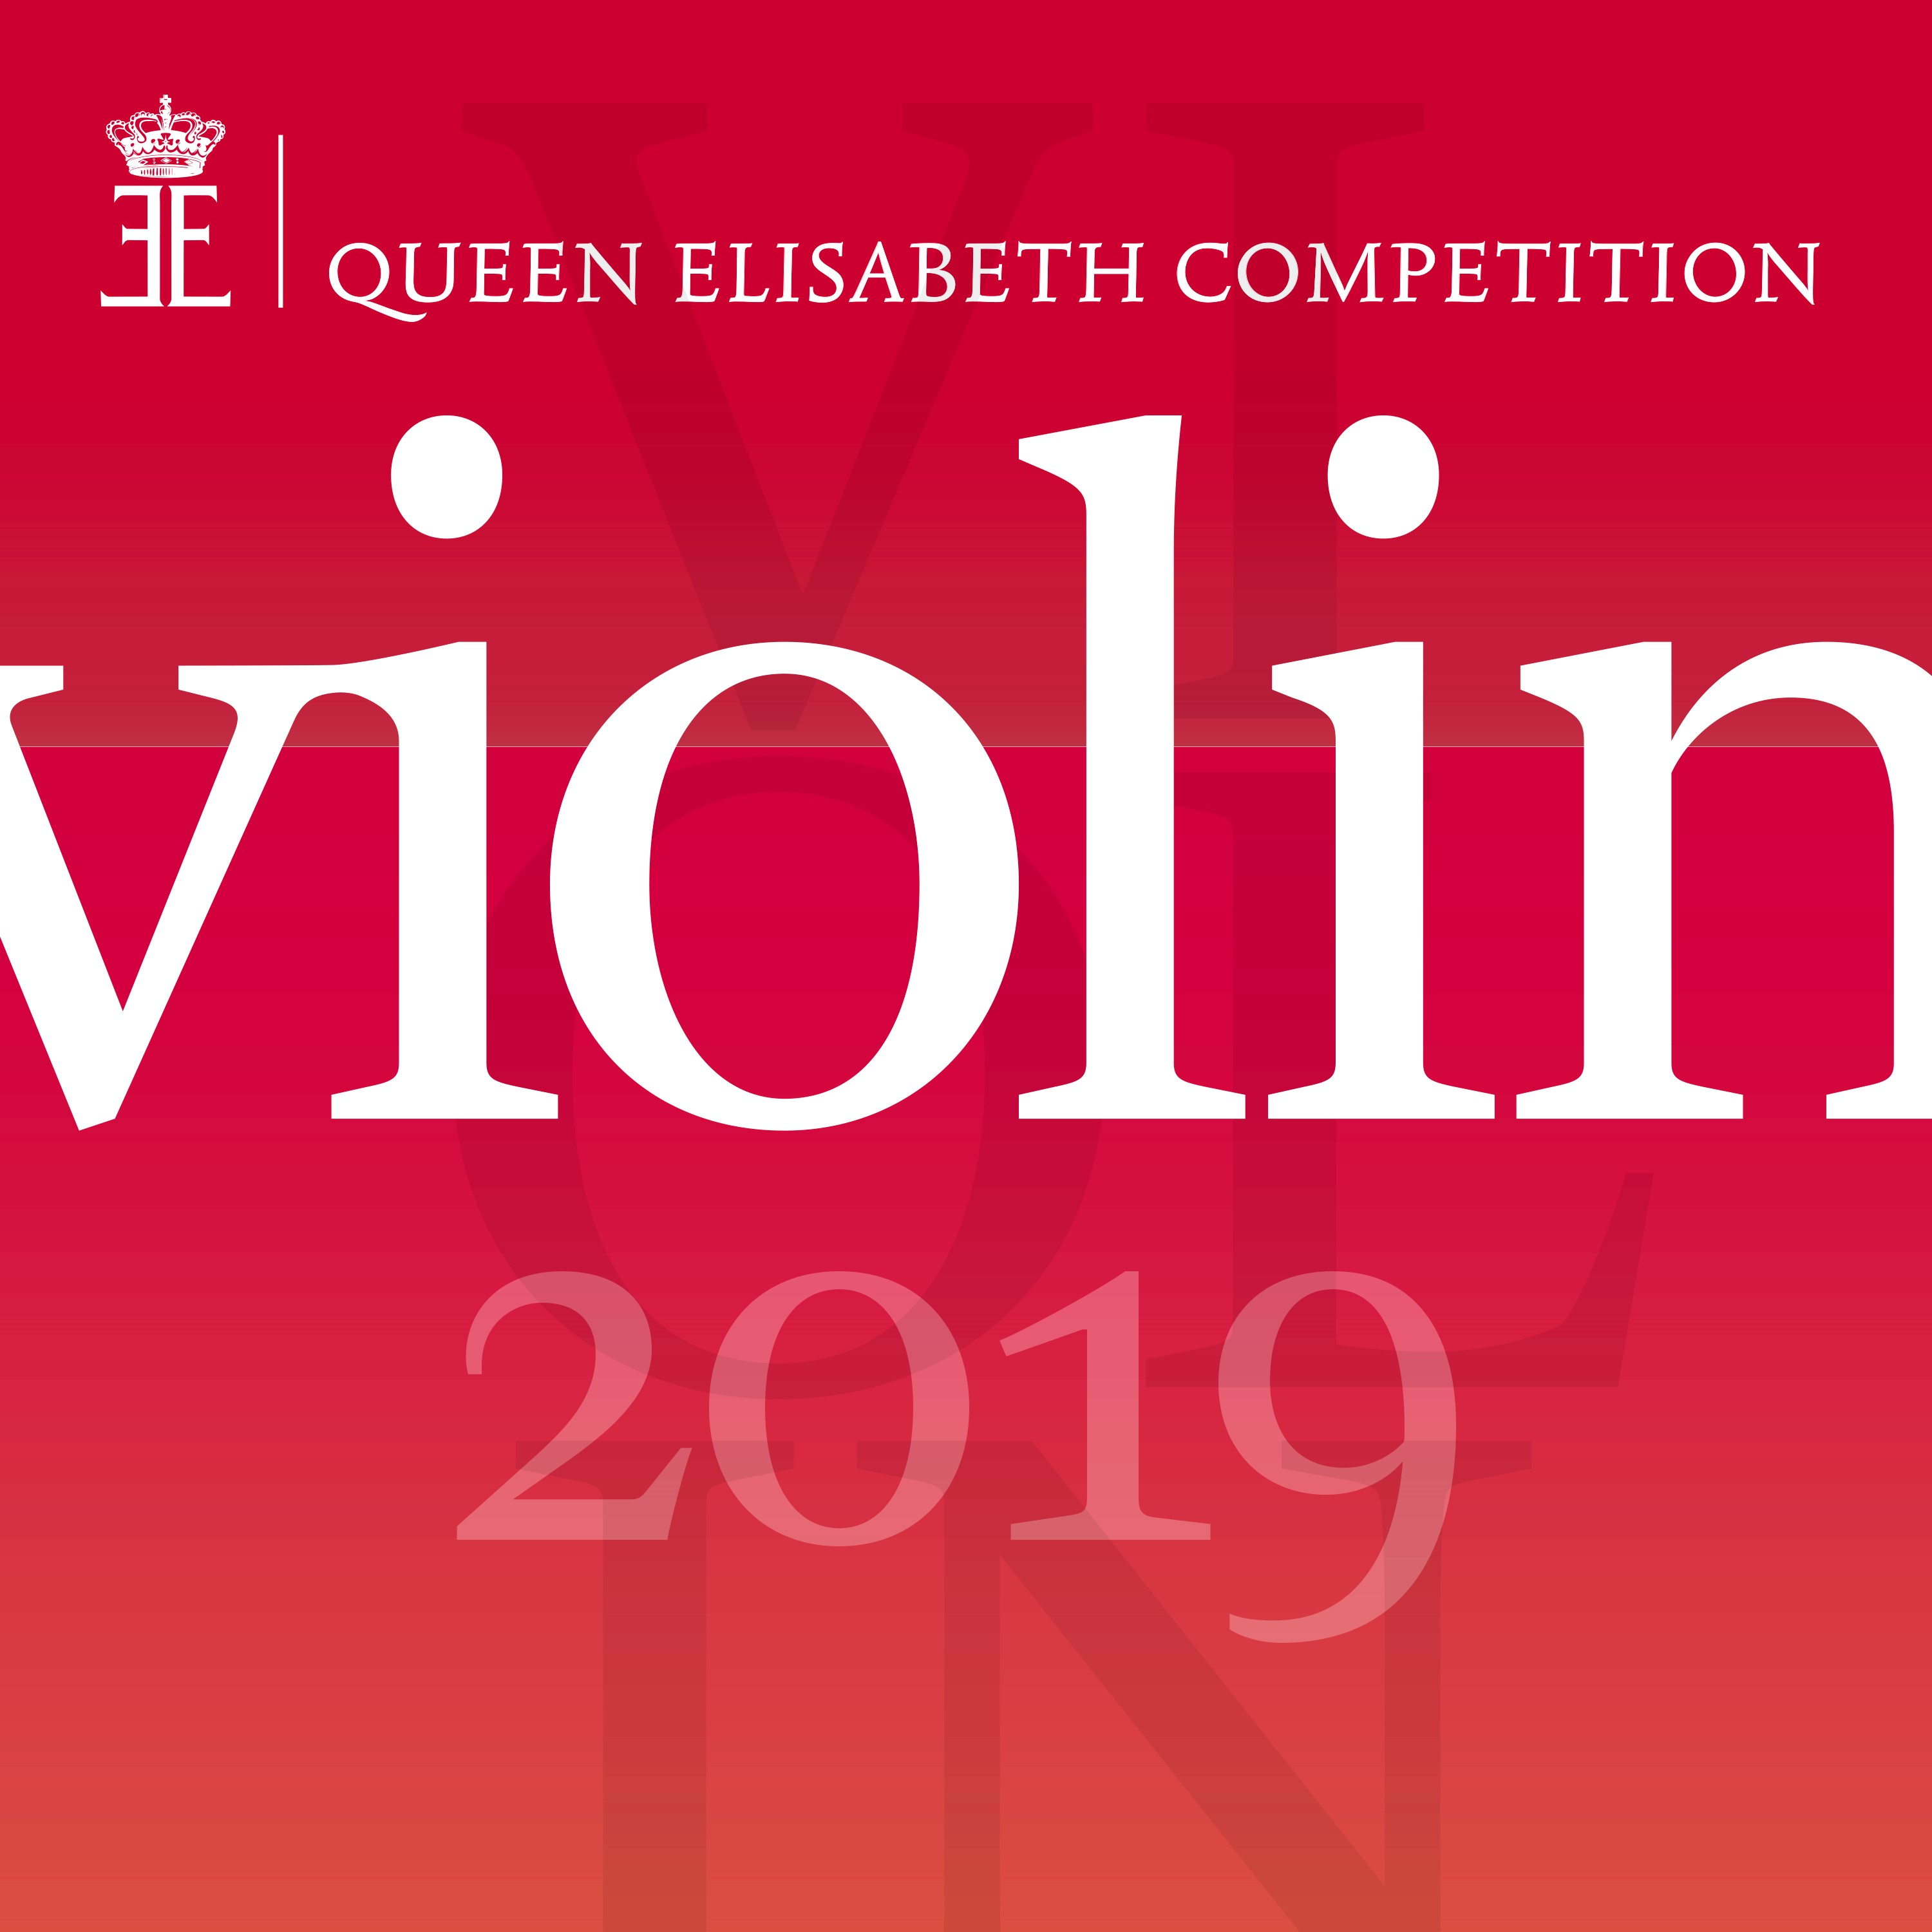 Queen Elisabeth Competition Violin 2019